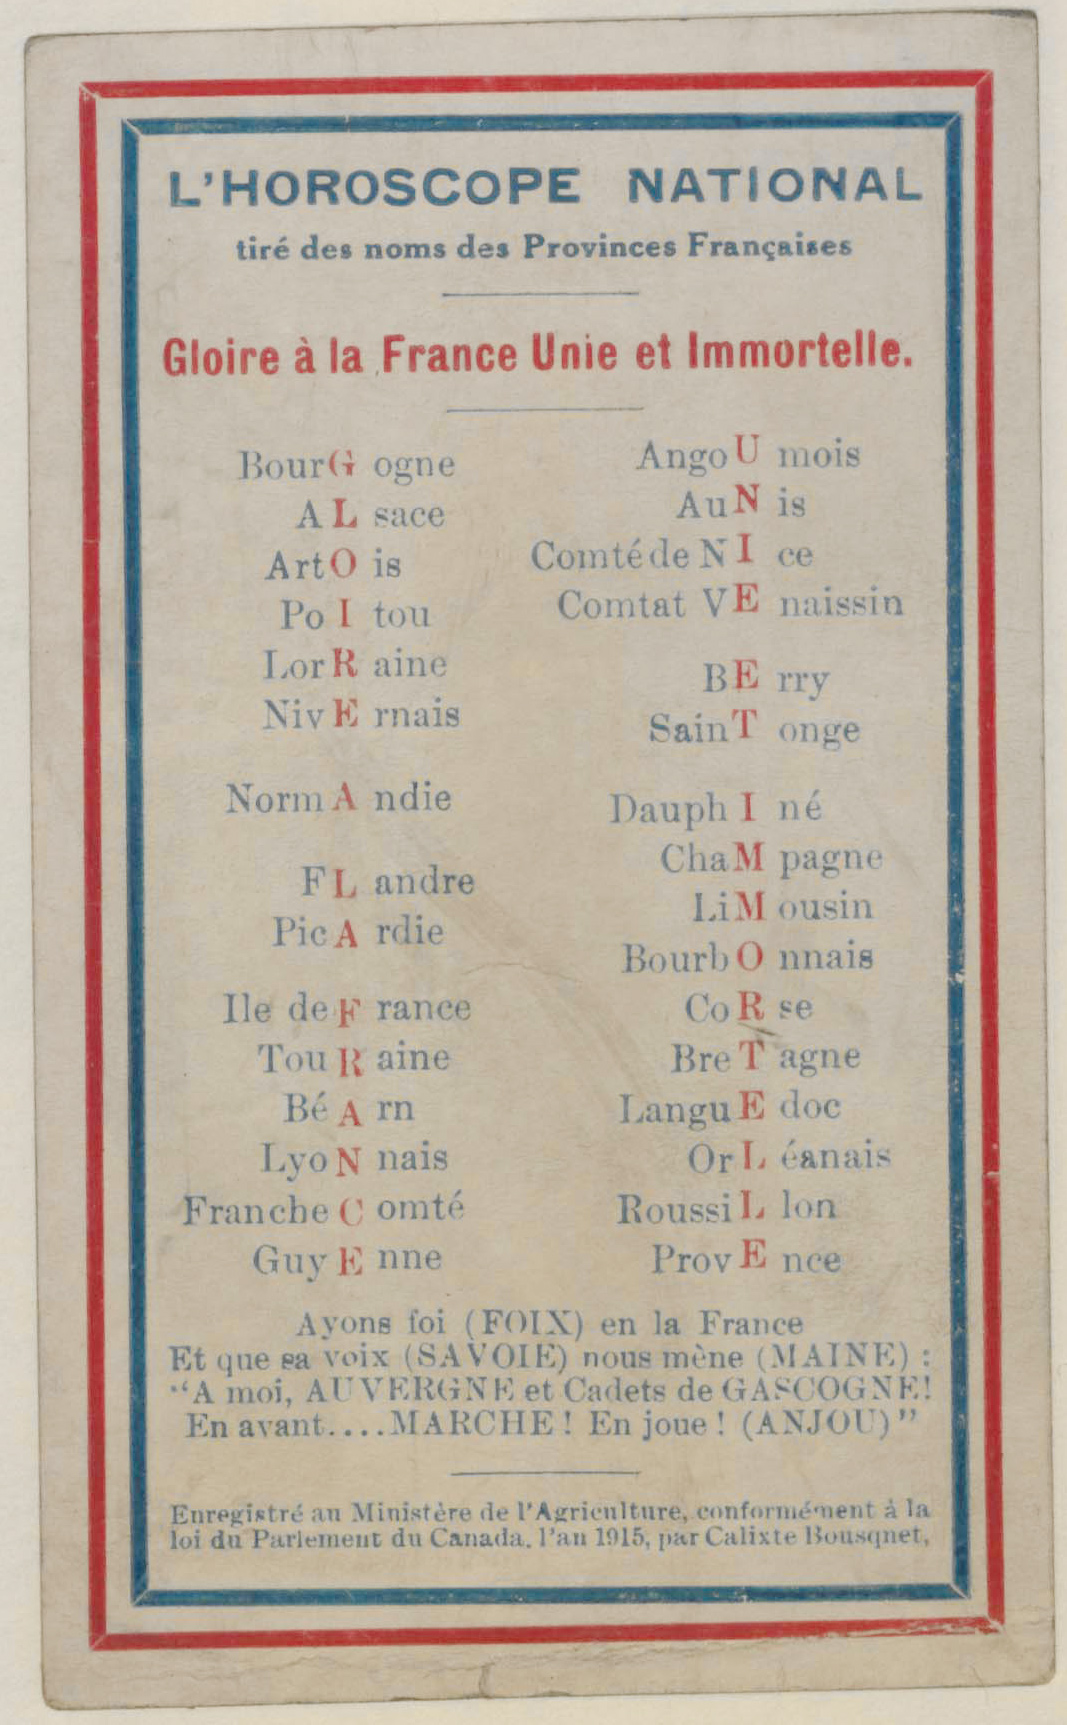 This Canadian postcard from 1915 lists areas of France in acrostic style, with the letters down the centre of each word spelling out 'Glorie à la France Unie et Immortelle' ('Glory to France, United and Immortal').